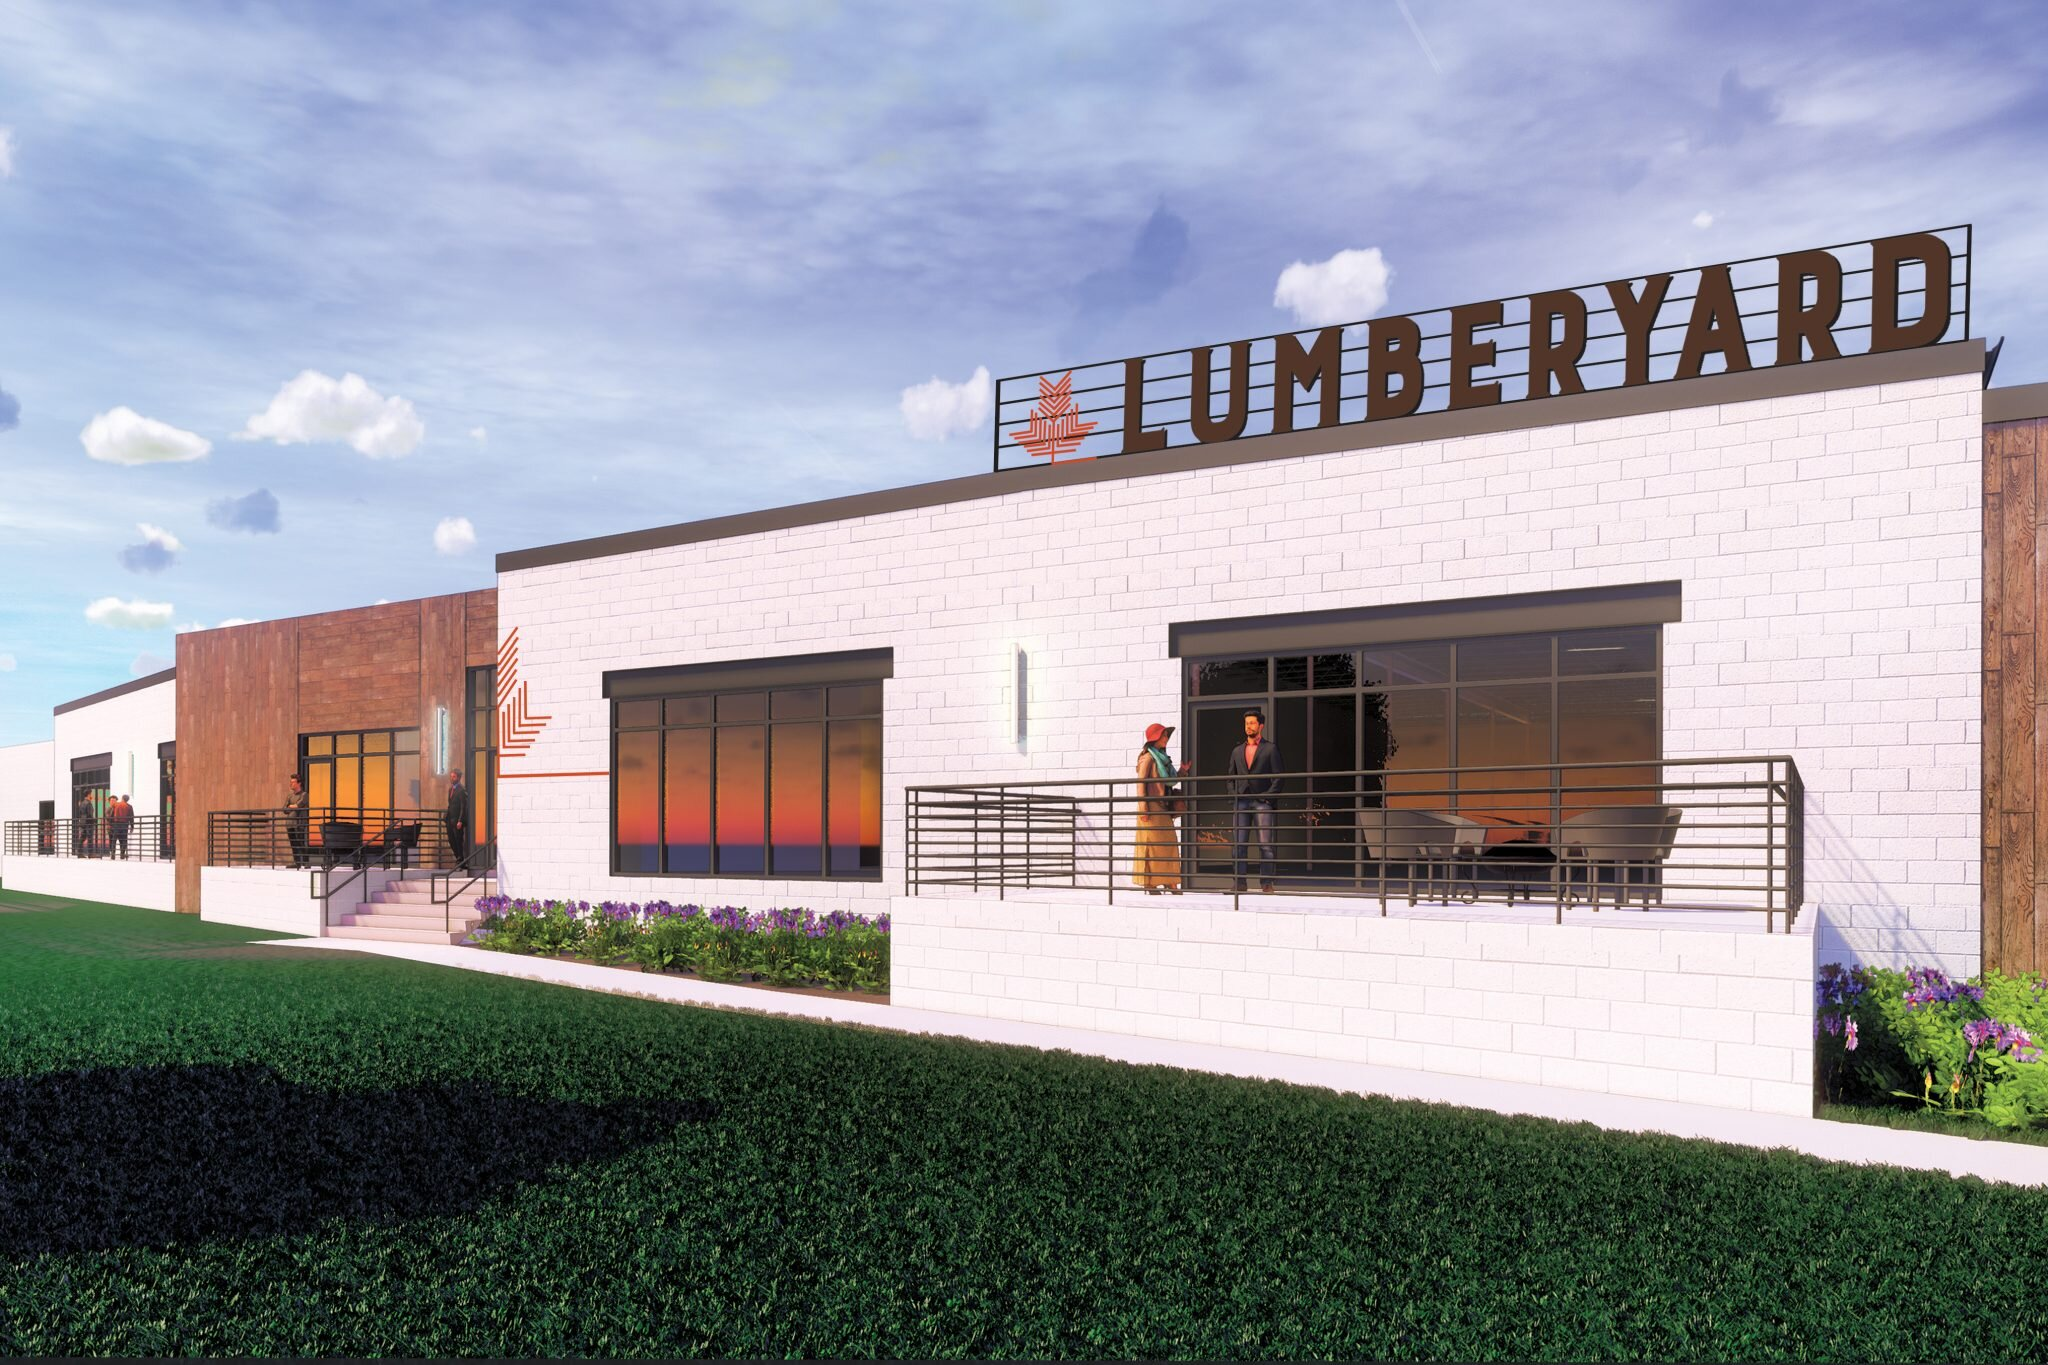 Offices at the Lumberyard in the Warehouse District